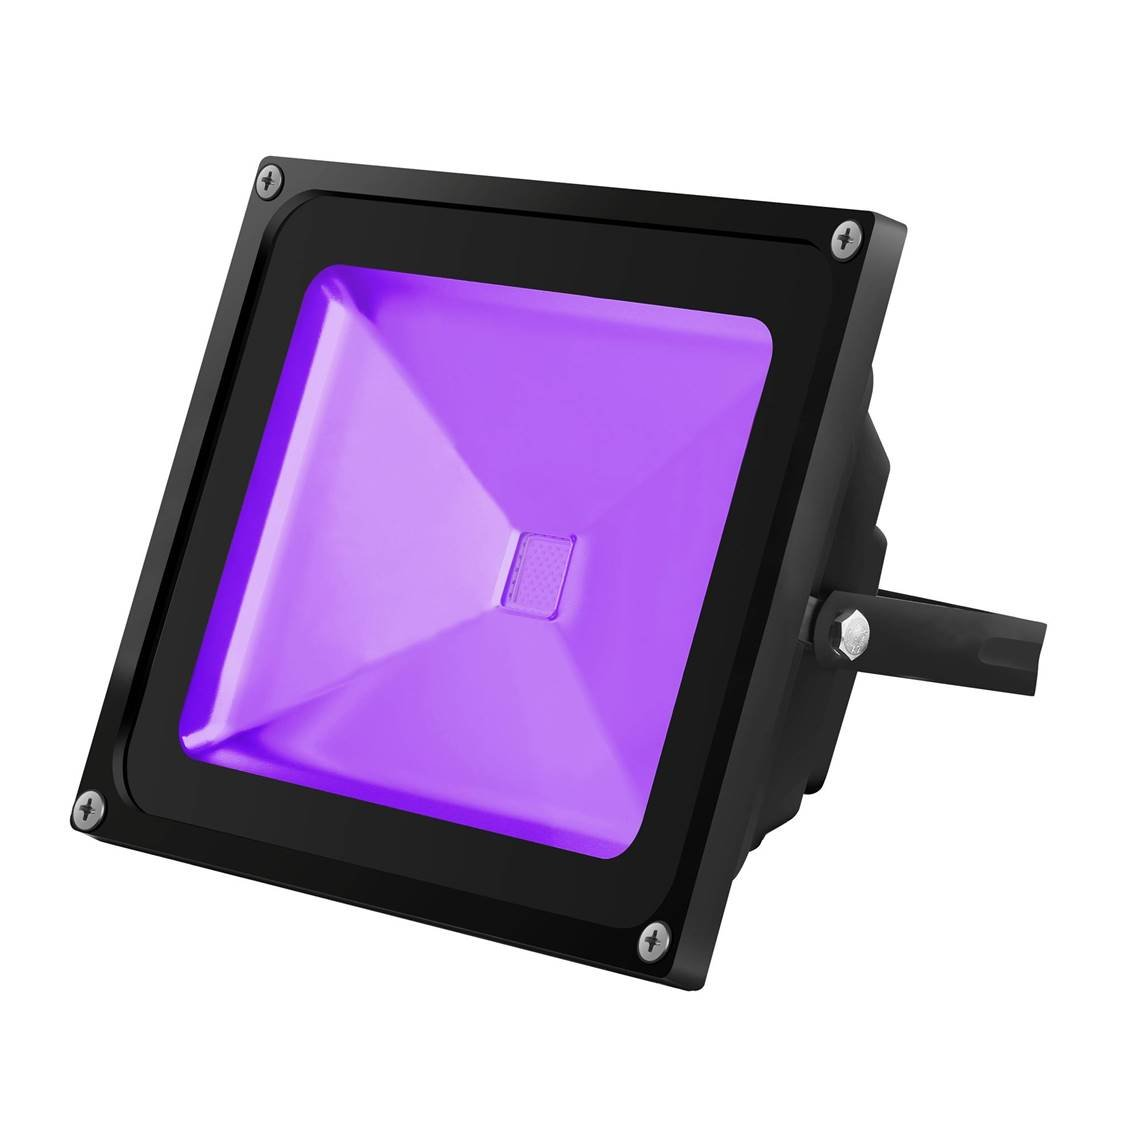 UV LED Black Light, YKDtronics Indoor/Outdoor 50W UV LED Flood Light, Ultra Violet LED Flood Light for Neon Glow, Blacklight Party, Stage Lighting, Fluorescent Effect, Glow in The Dark and Curing